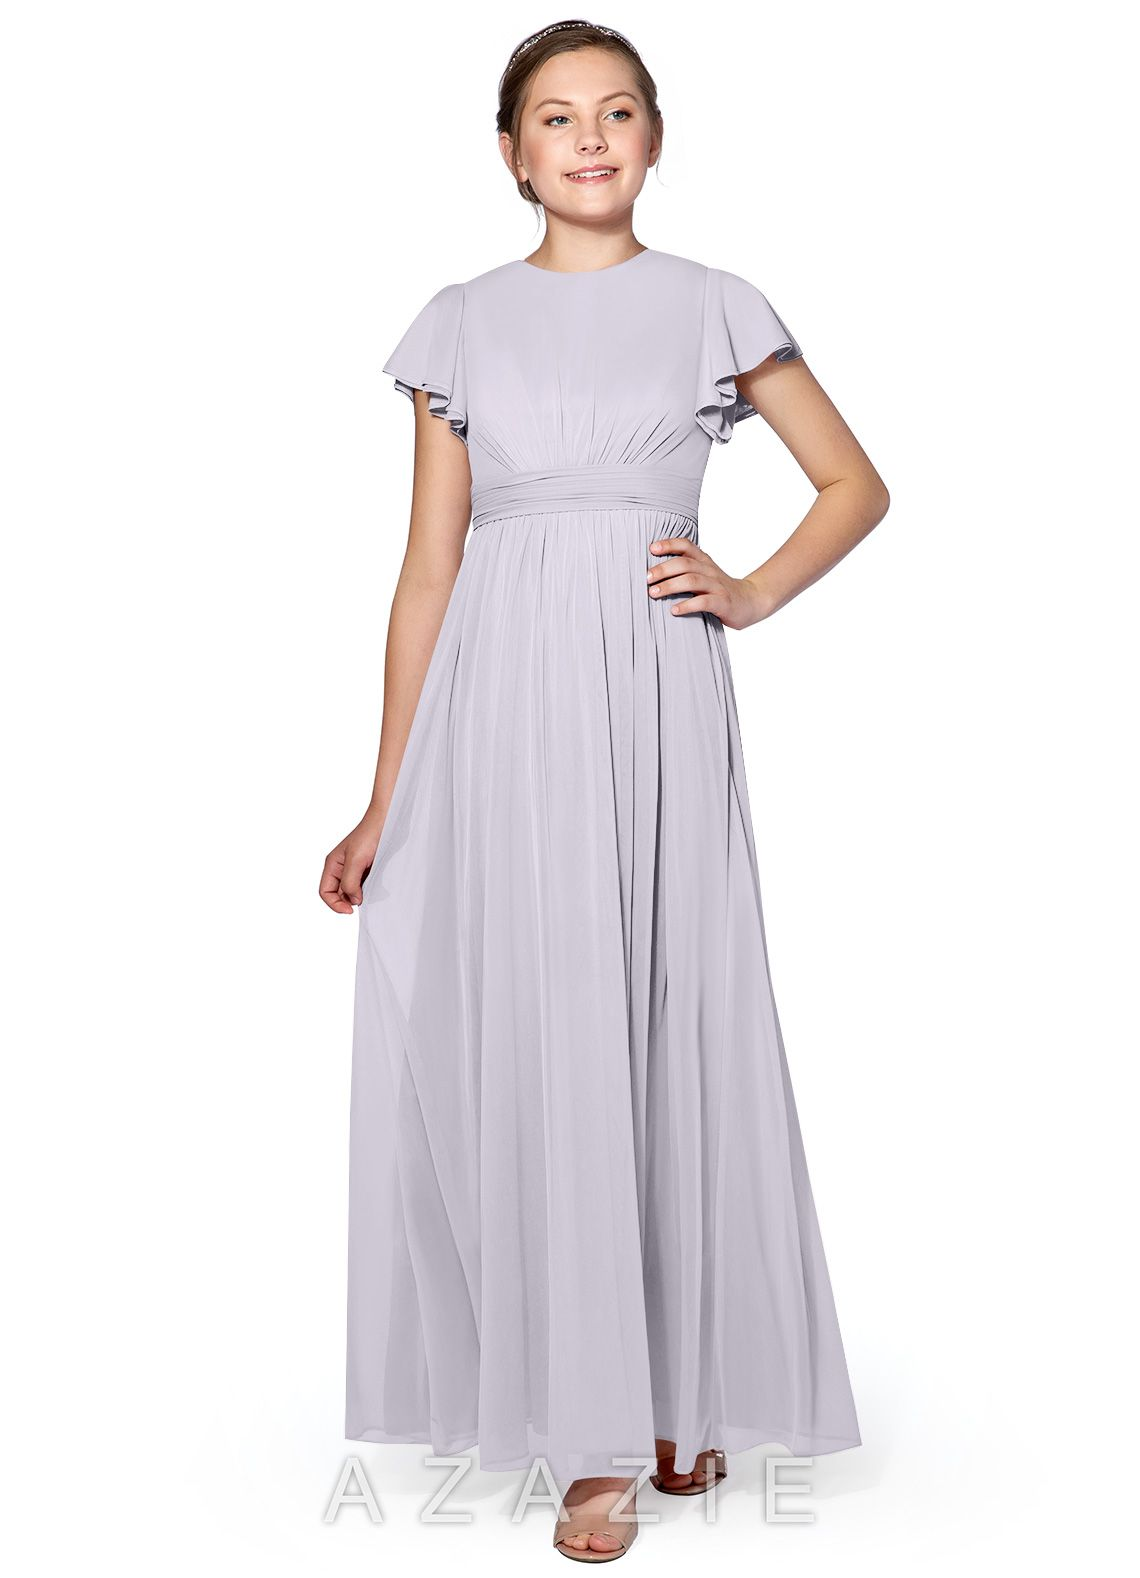 1f8501f7c1bd Azazie Mosley JBD Junior Bridesmaid Dress | Azazie